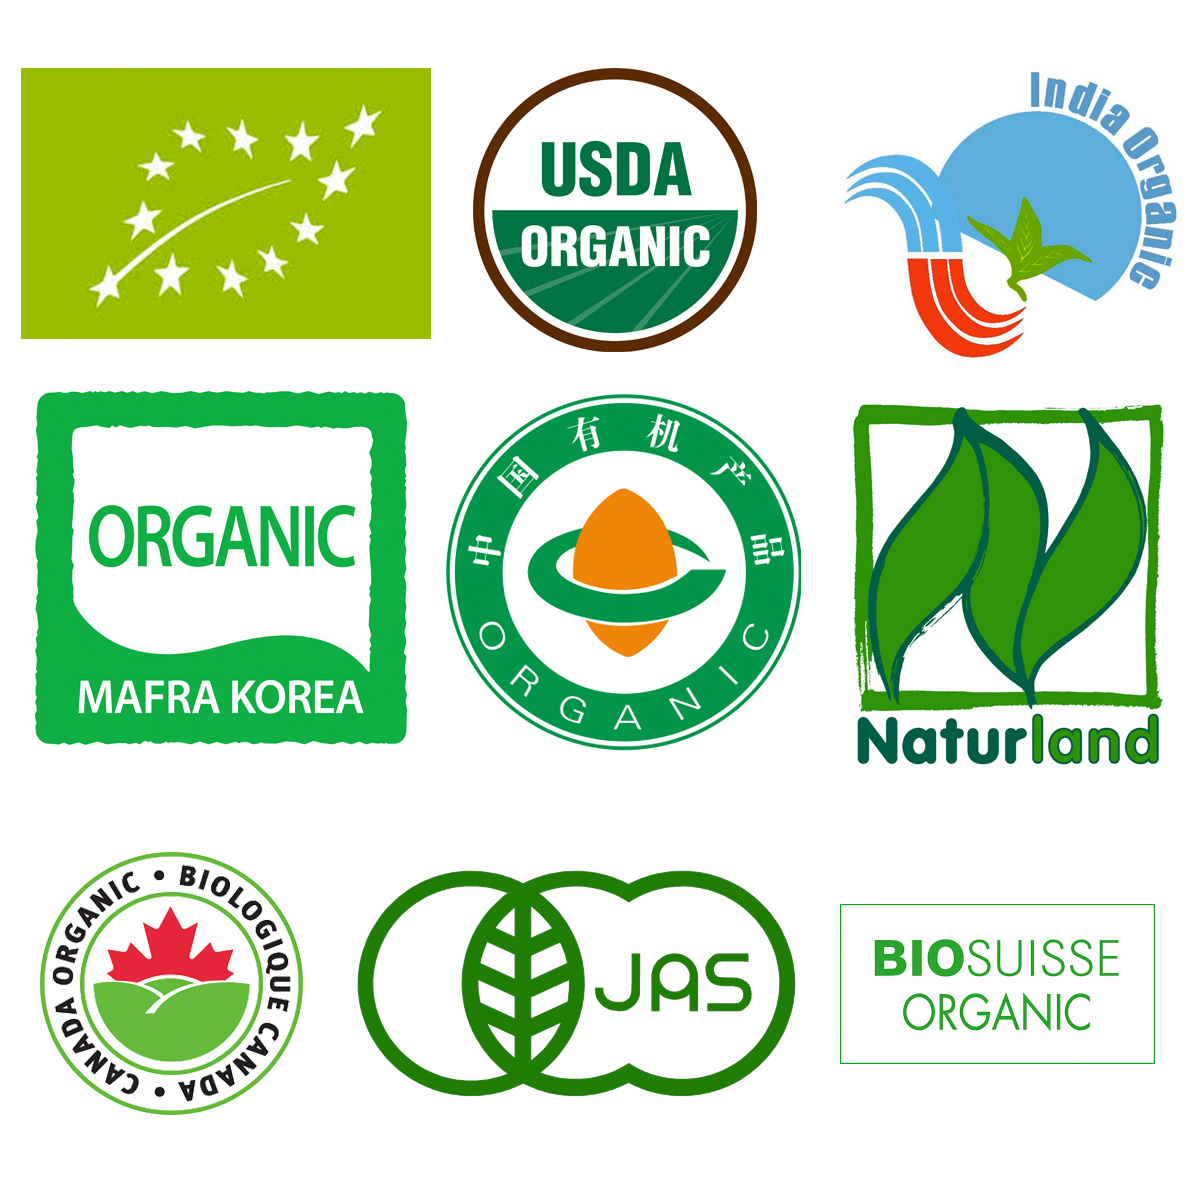 organic certification certifications foods bio nature farmers agencies safety mantra save